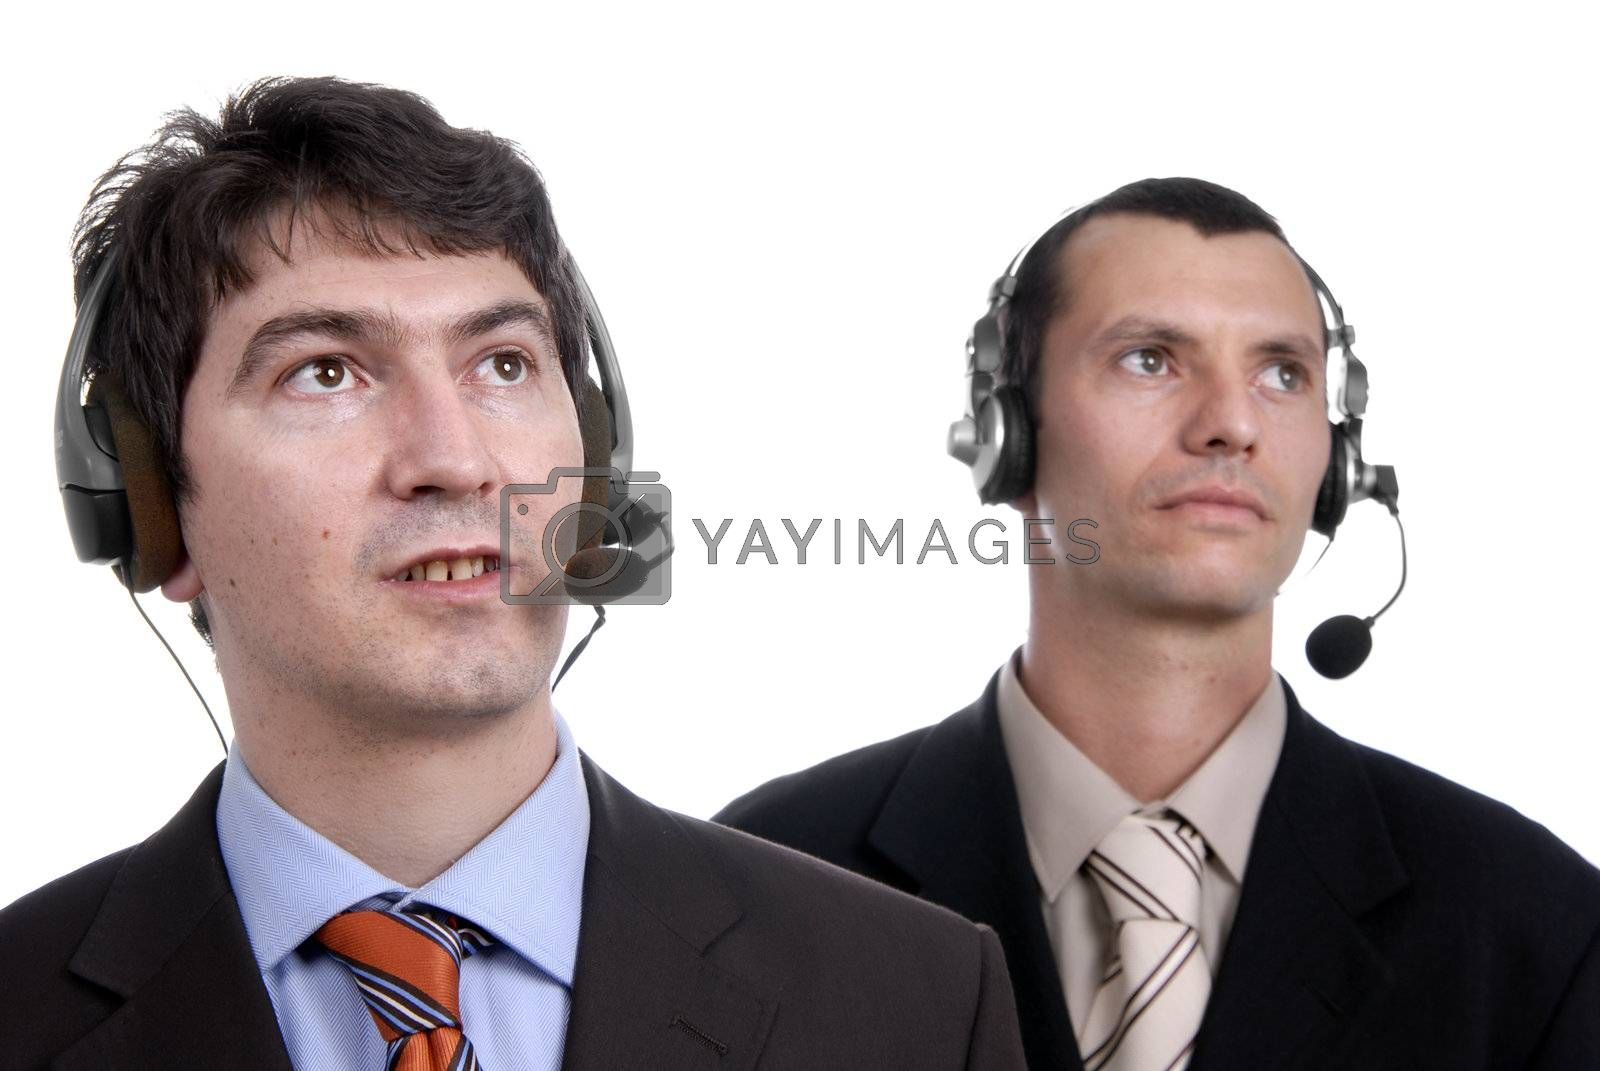 call center by zittto